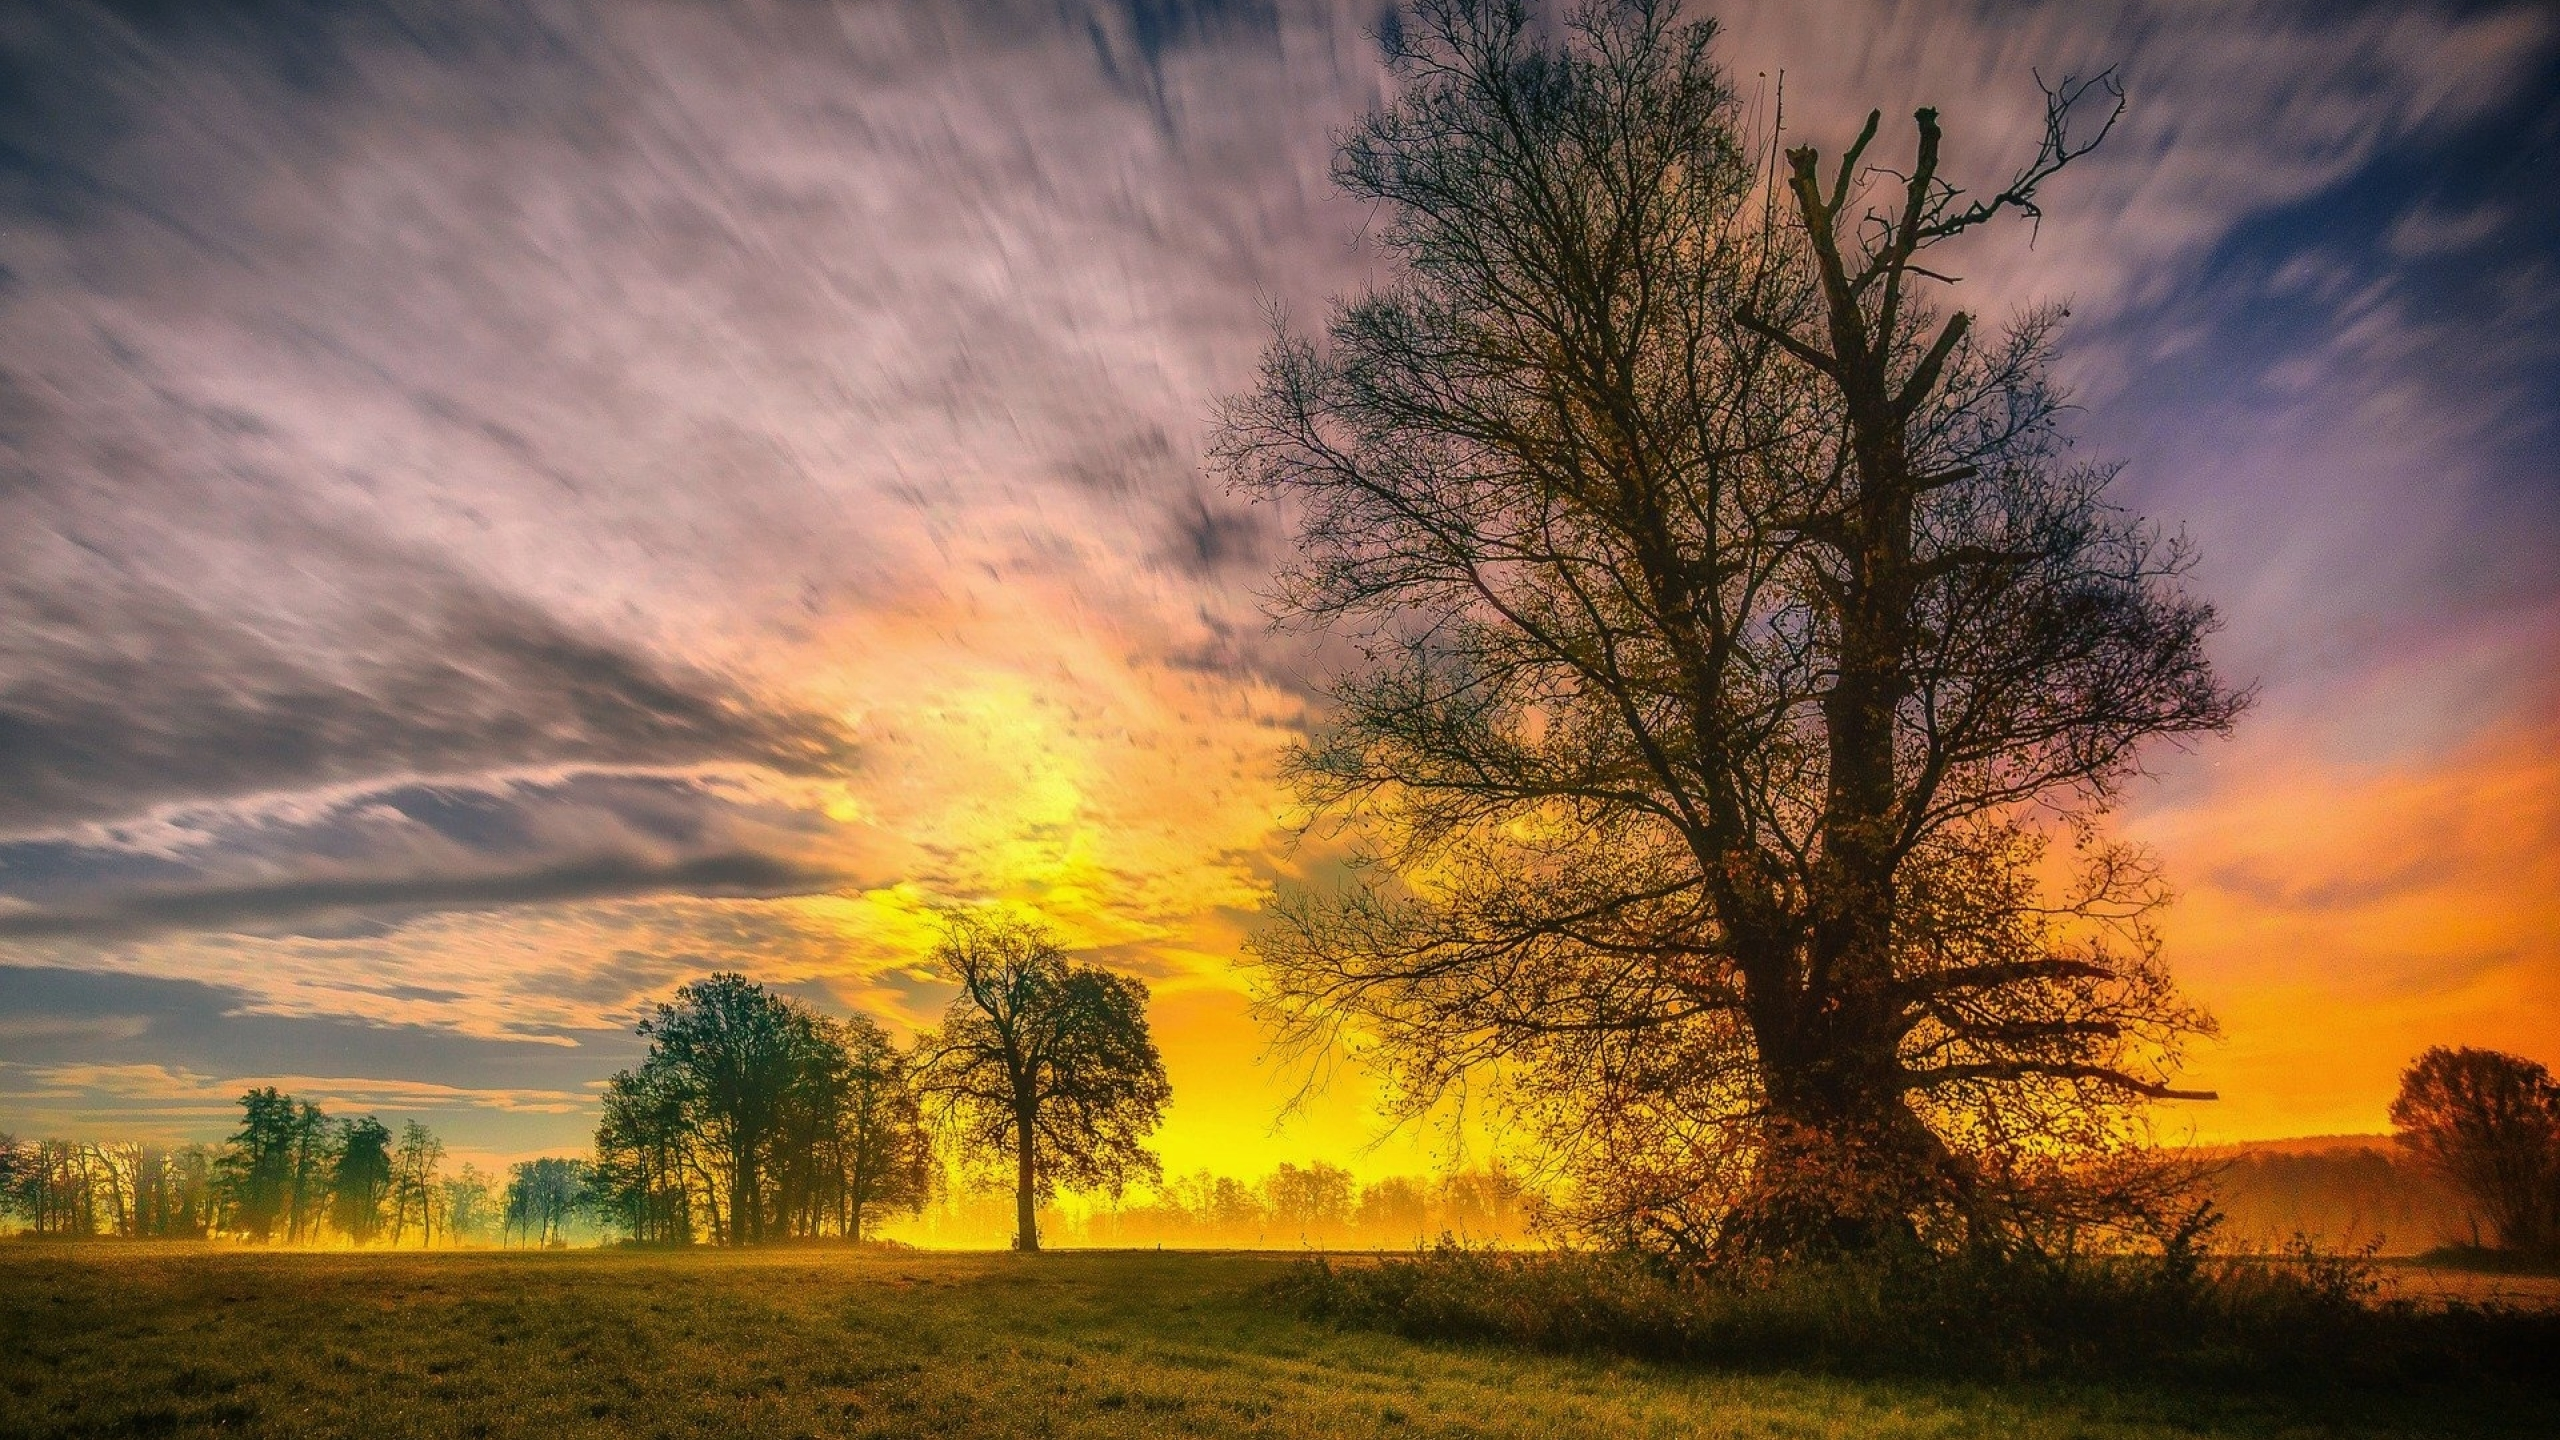 2560x1440 Spring Trees And Sunset 1440p Resolution Wallpaper Hd Nature 4k Wallpapers Images Photos And Background Wallpapers Den